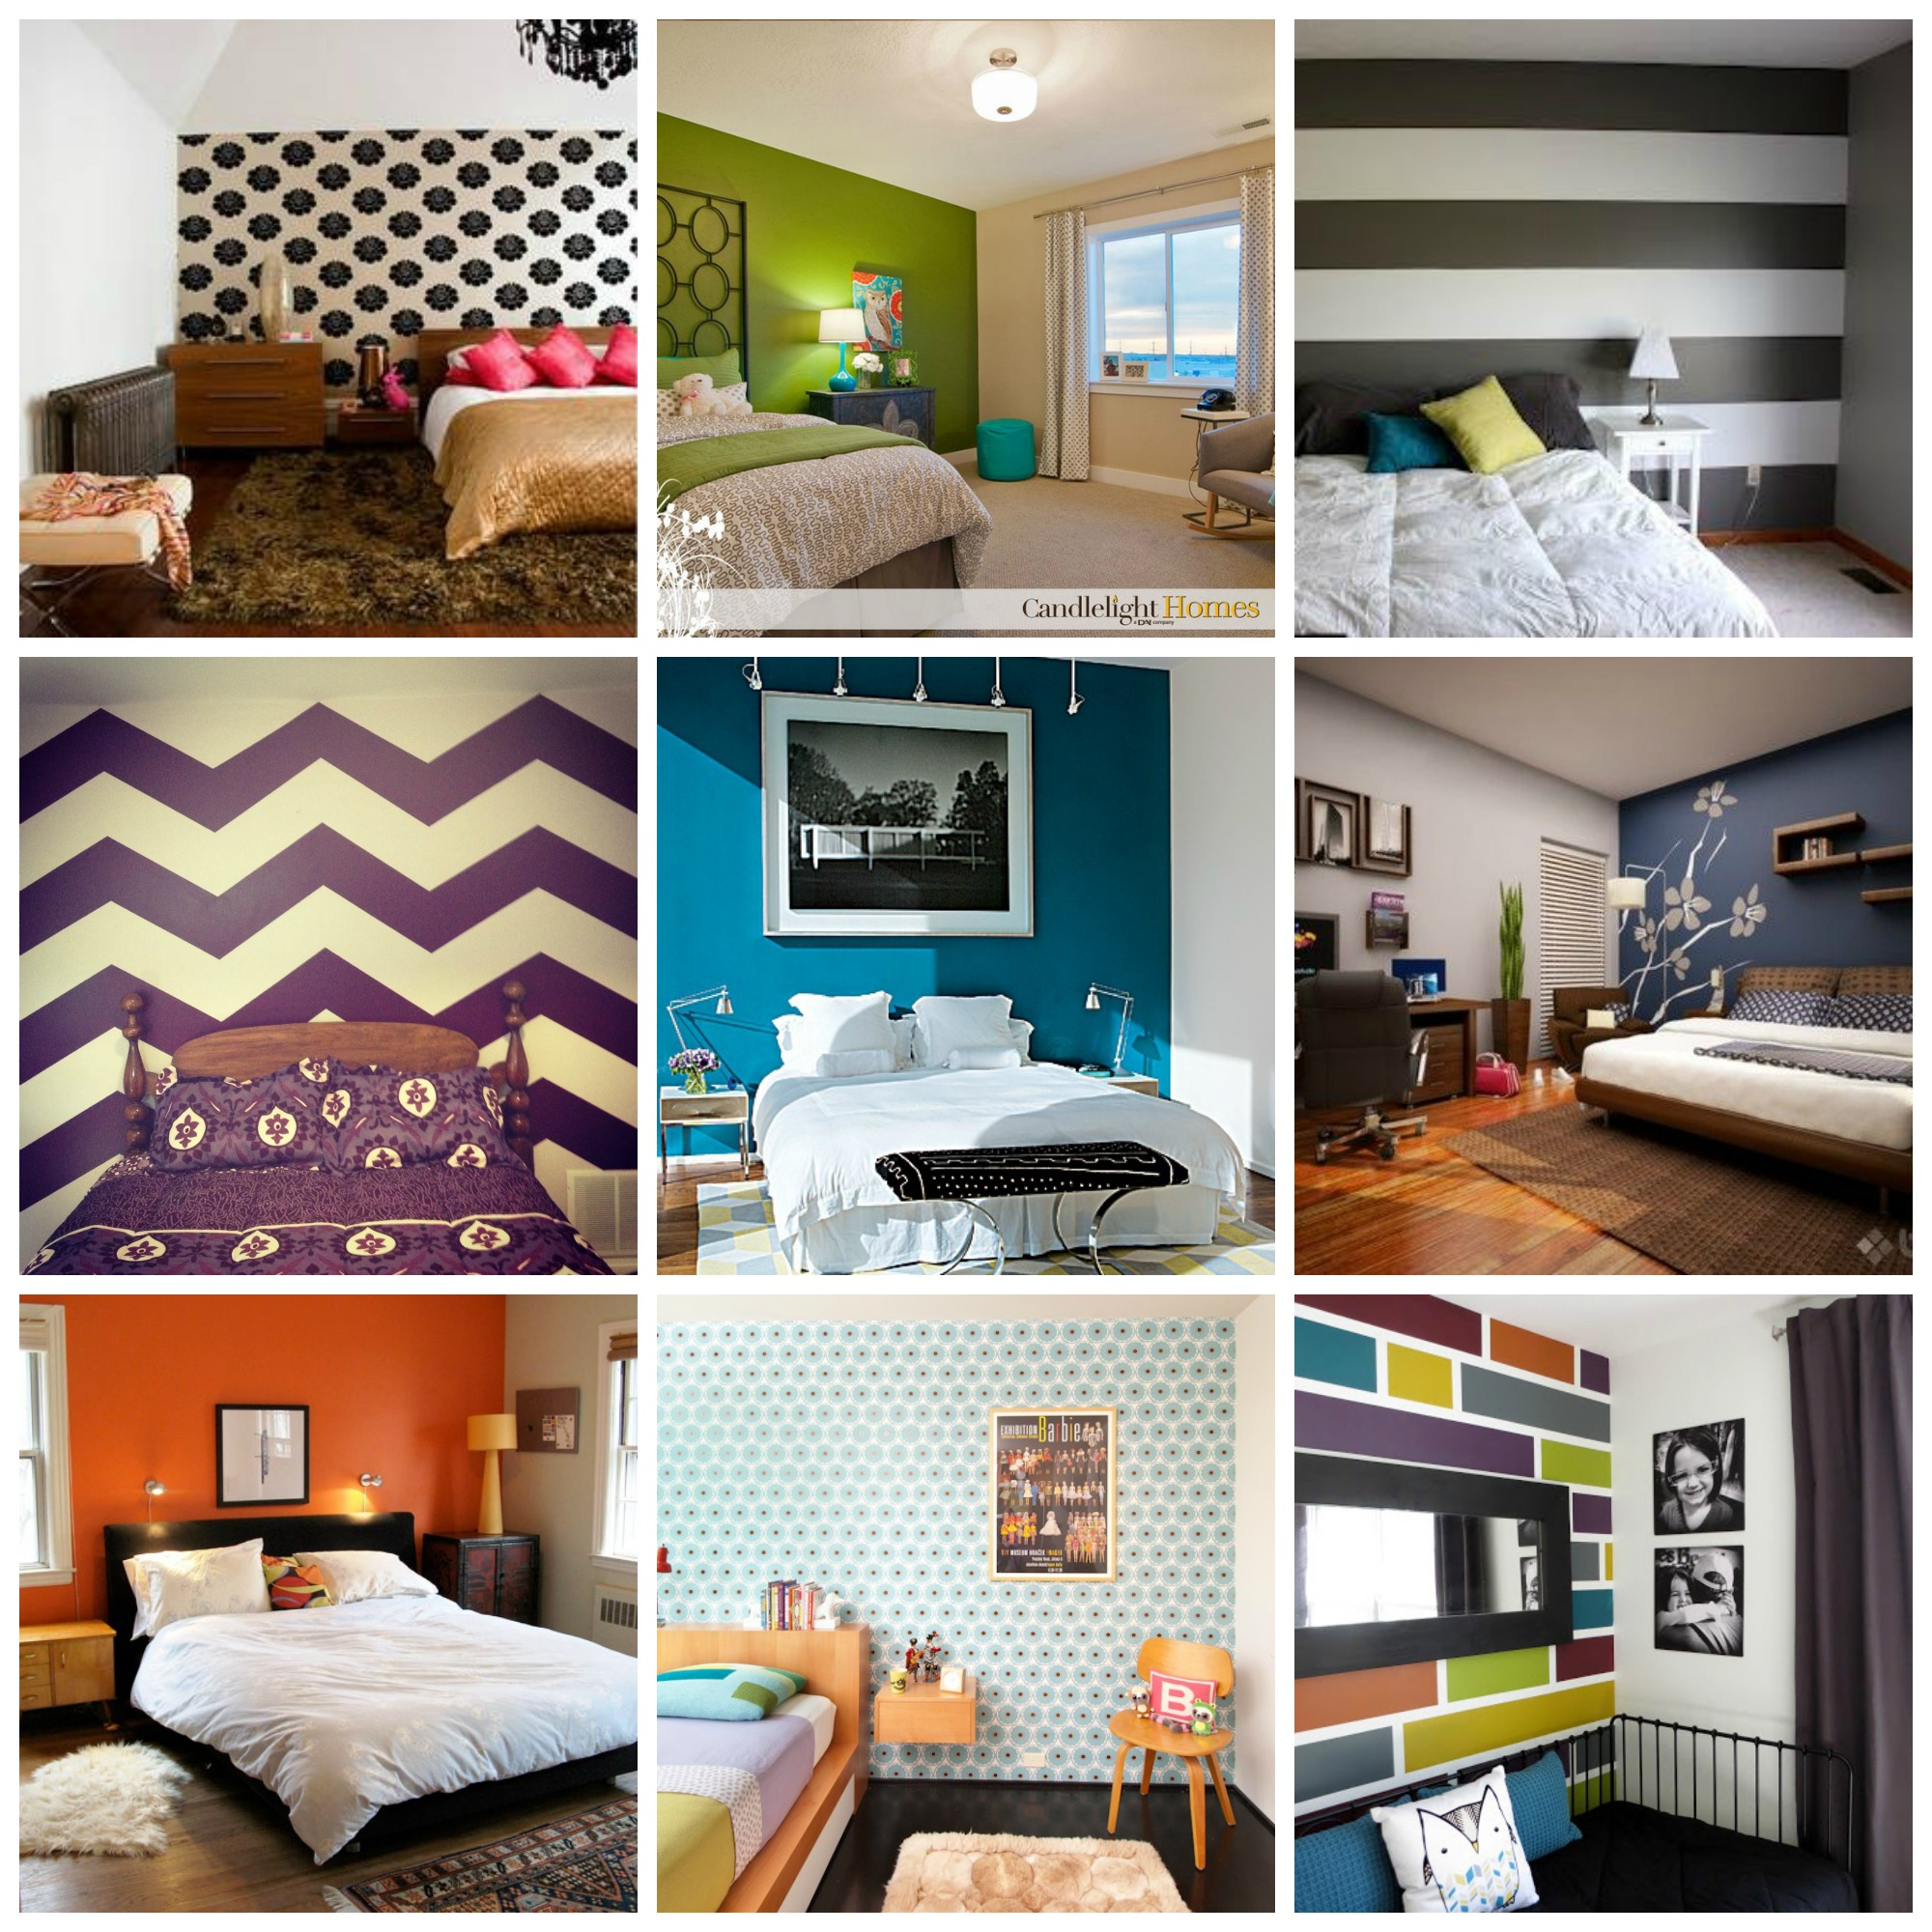 Magnificent Modern Accent Wall Ideas Of Images About On Inspiration Pillows Designs